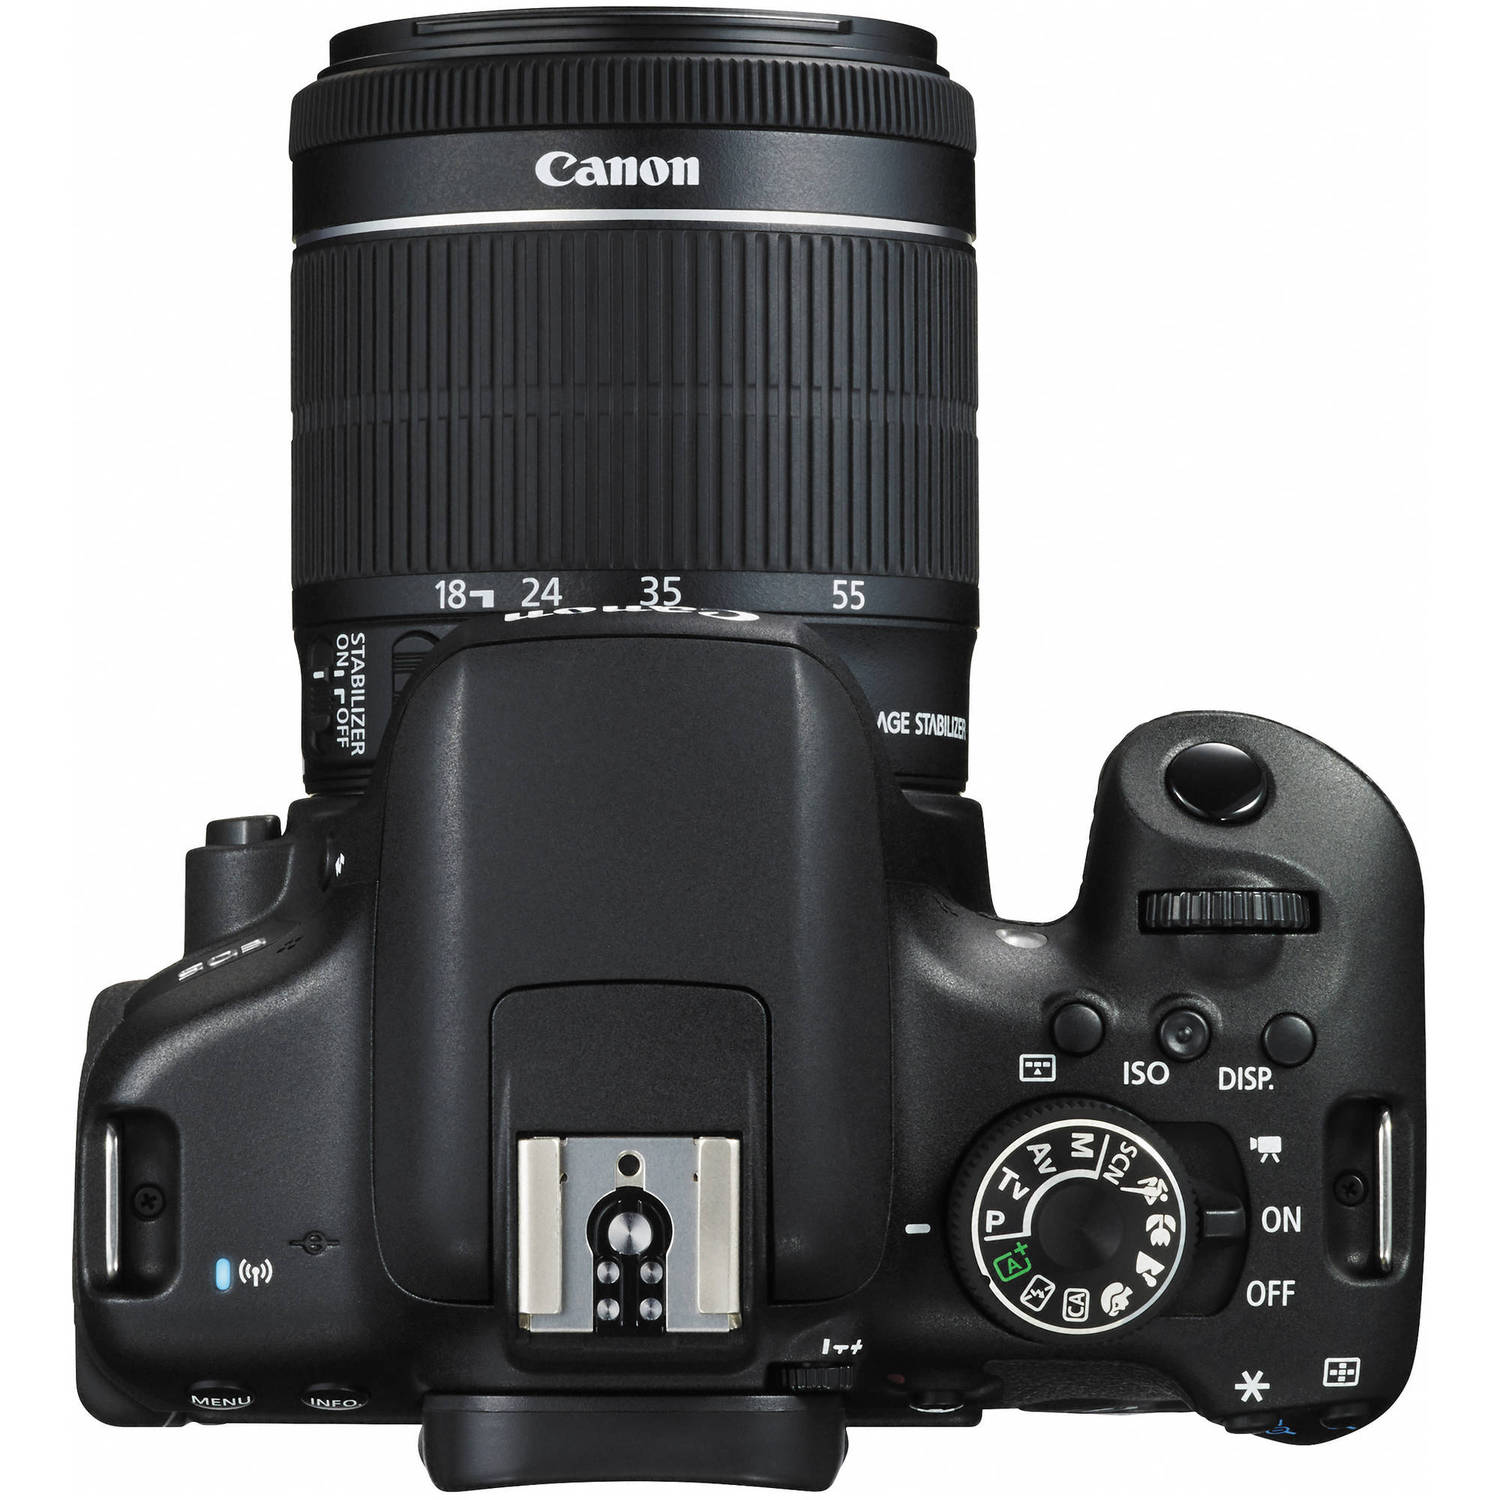 دوربین کانن Canon EOS 750D 18-55mm IS STM Lens